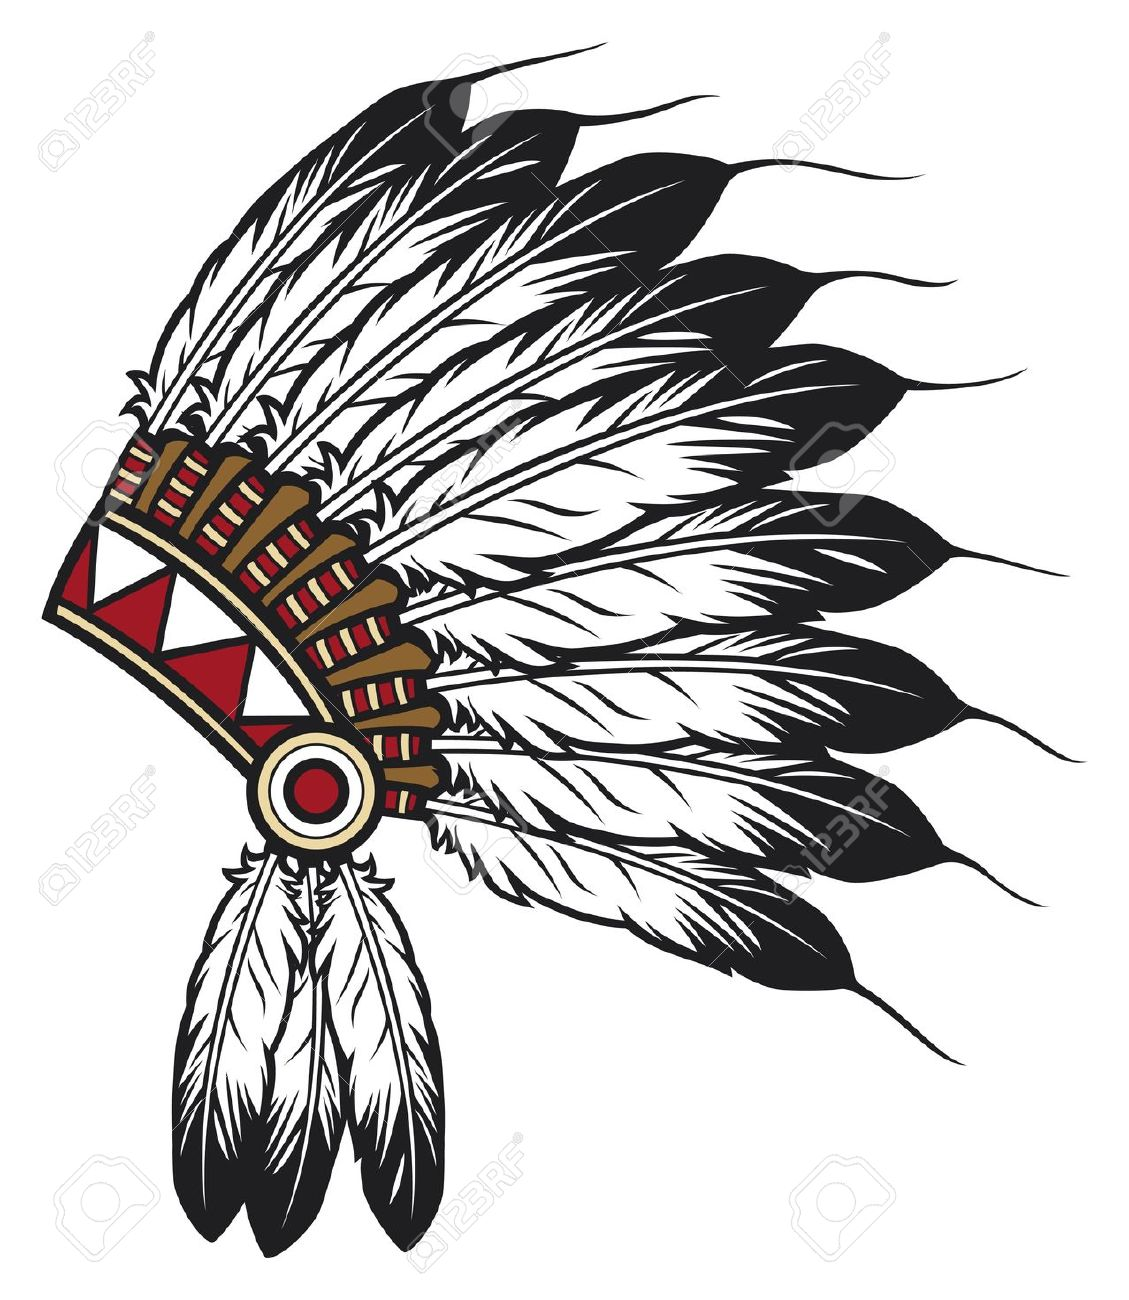 hight resolution of indian headdress clipart